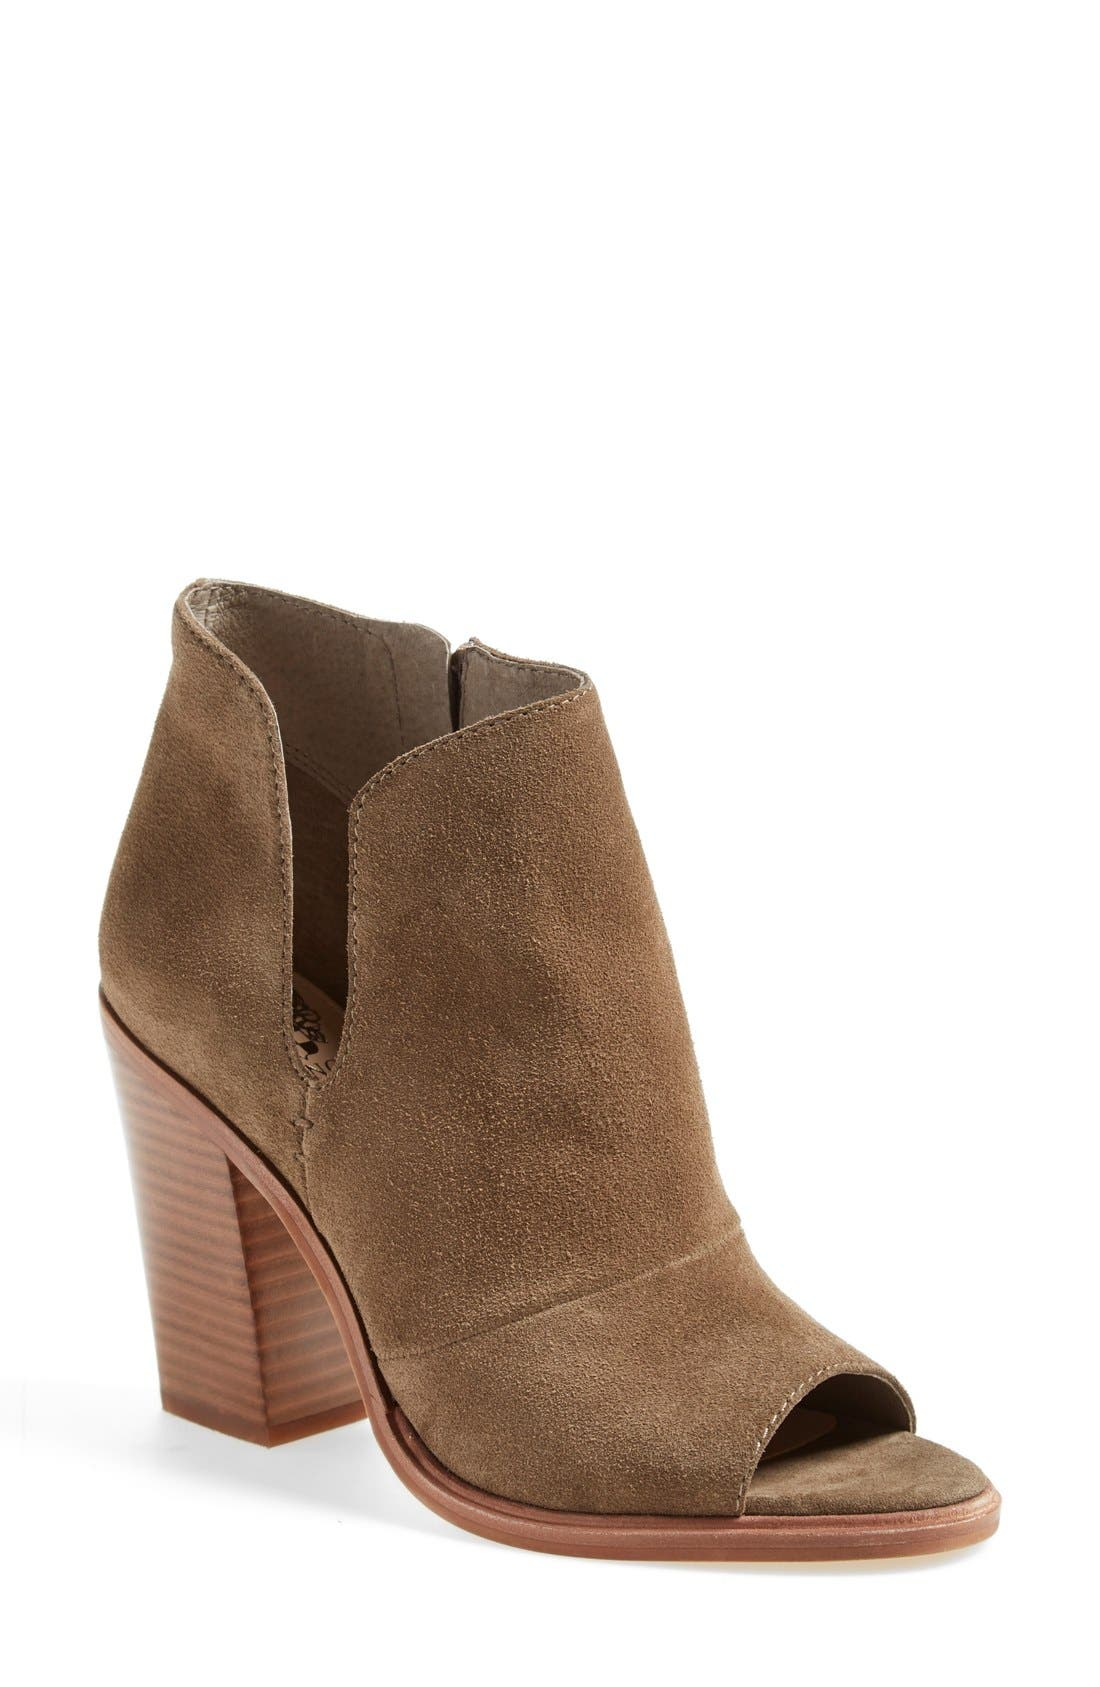 Alternate Image 1 Selected - Vince Camuto 'Katleen' Peep Toe Bootie (Women) (Nordstrom Exclusive)